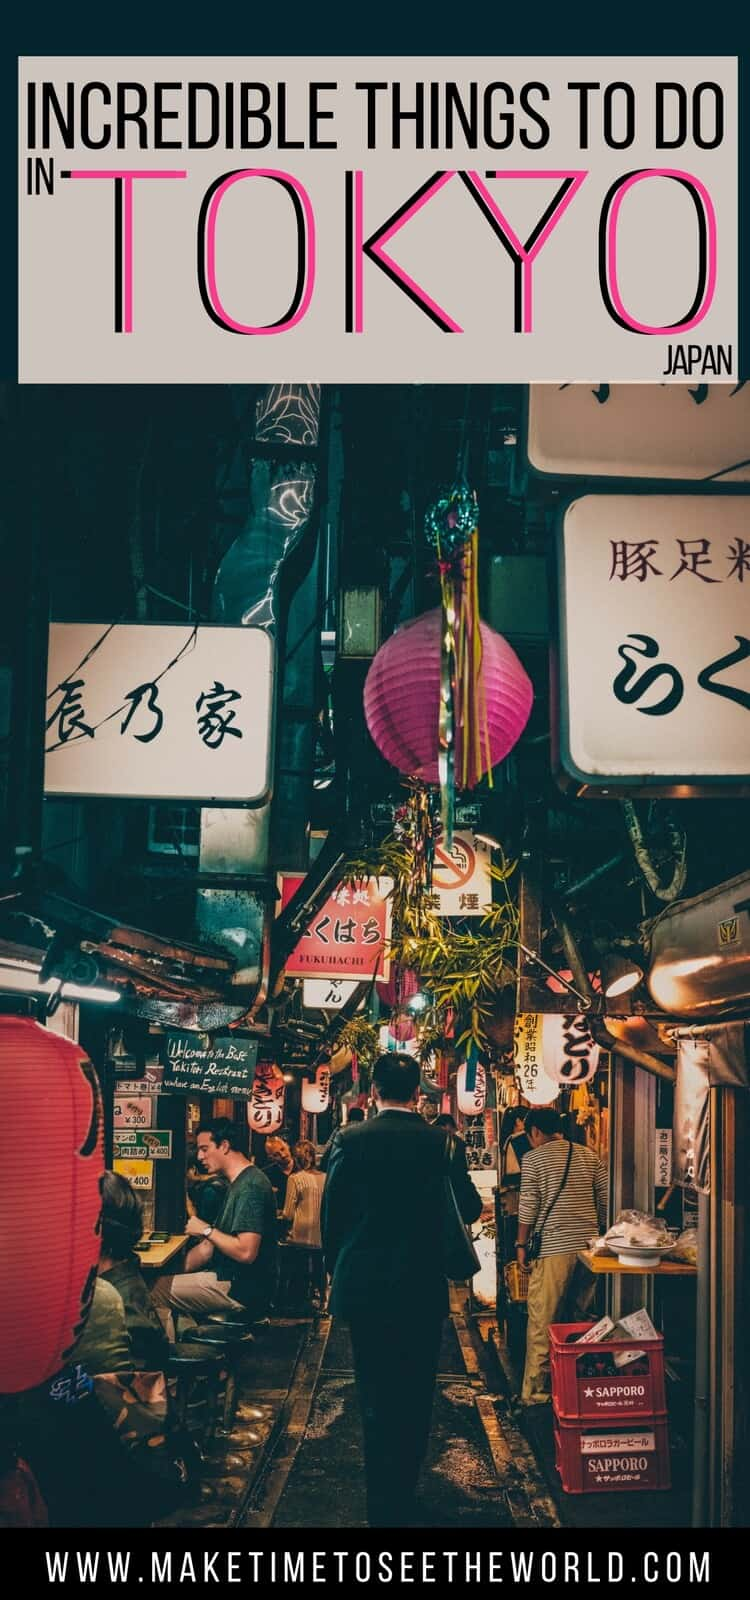 Things to do in Tokyo Japan - long pin image of busy, narrow Japanese street with text overlay